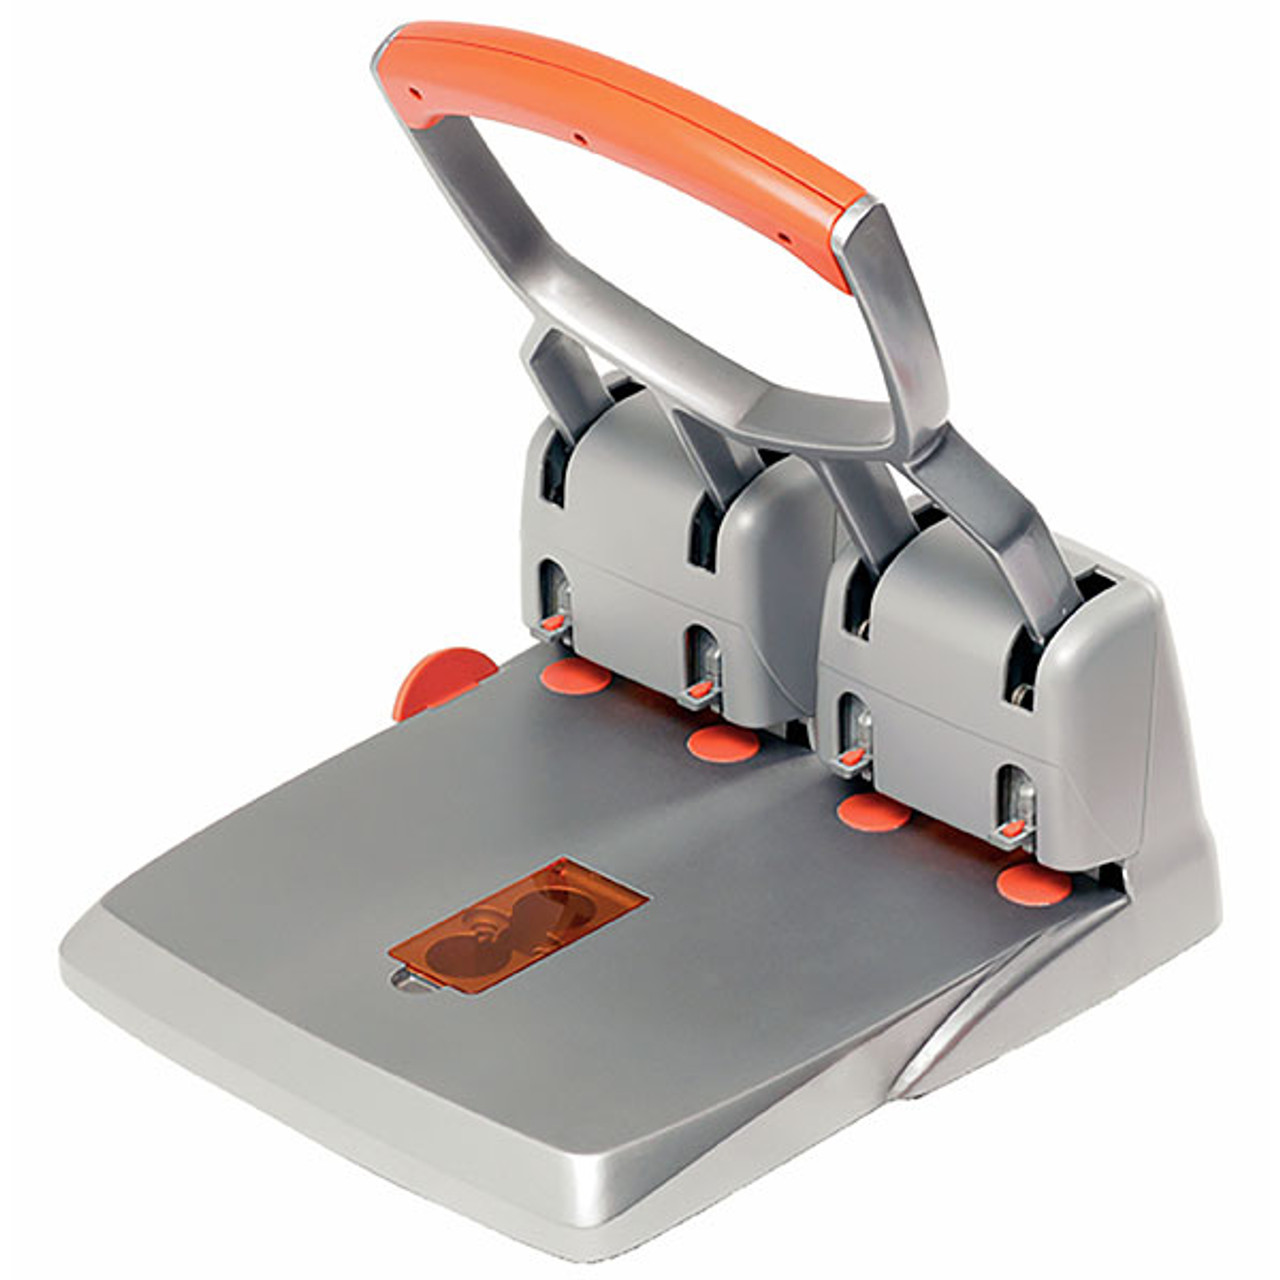 General Office Supply Heavy Duty Power Hole Punches Accessories